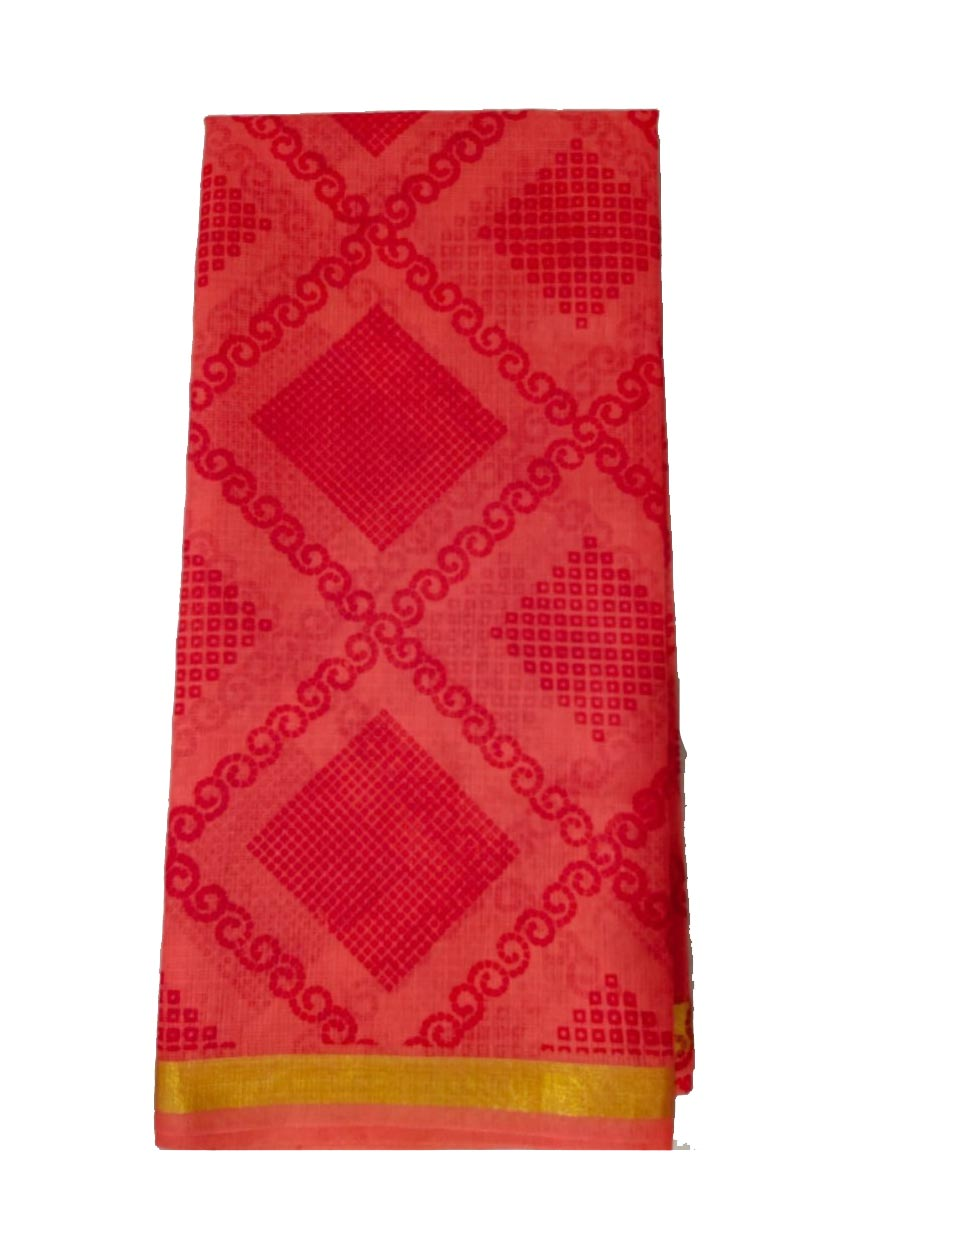 WOMEN SYNTHETIC DORIYA SAREE WITH BLOUSE-PEACH-DF JULY SUMMER COOL 05